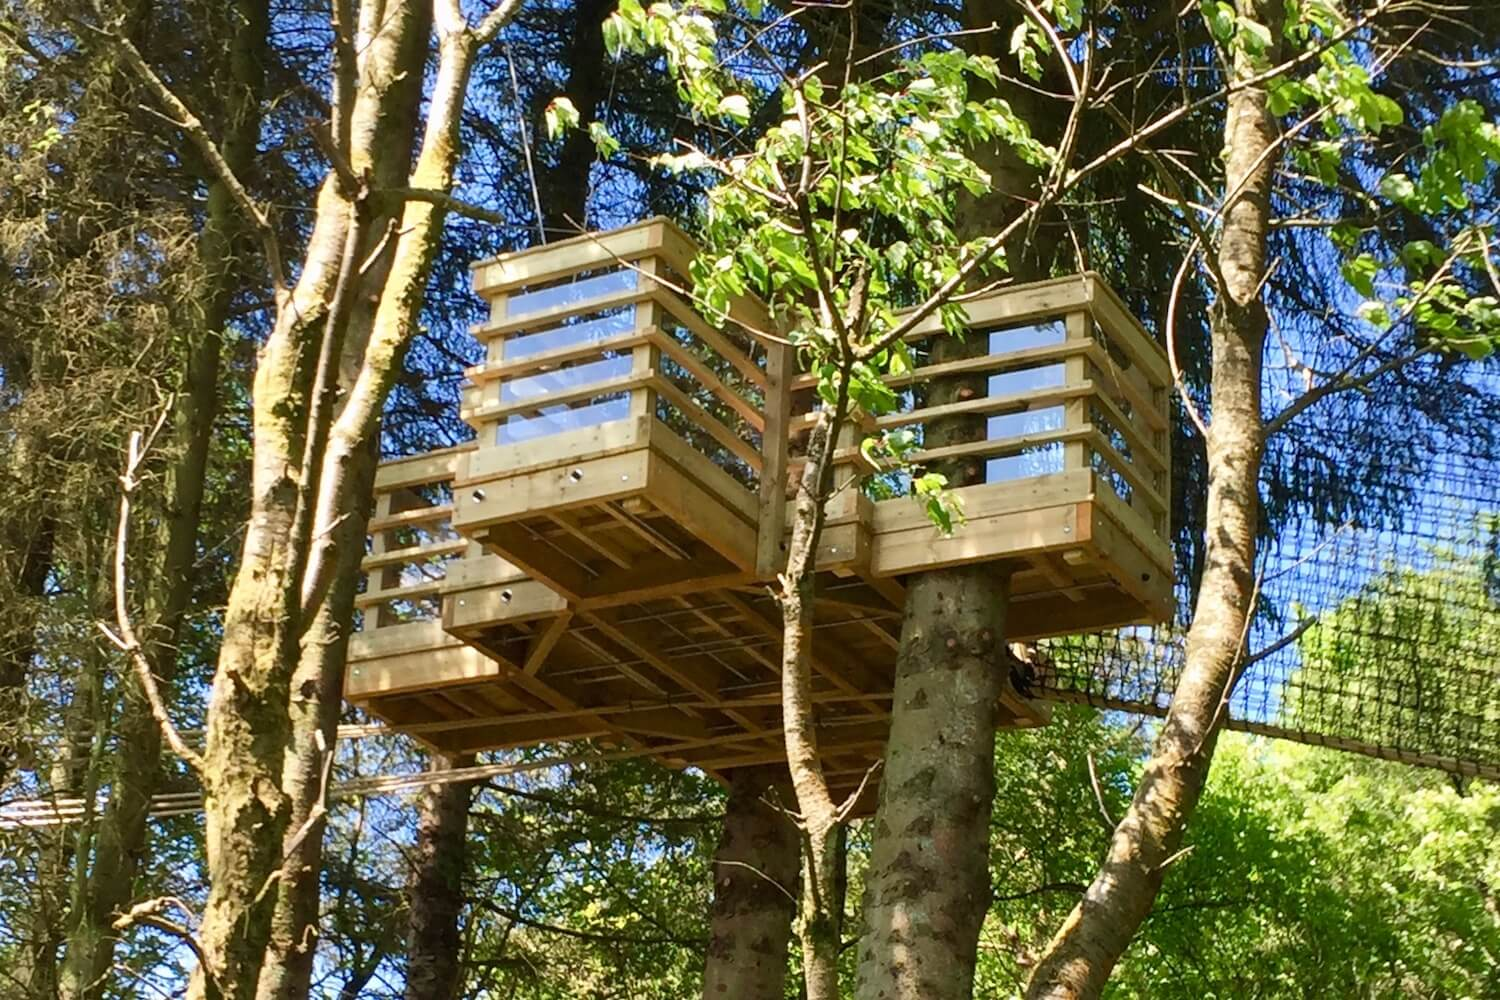 'Tree-Surfing' treehouse